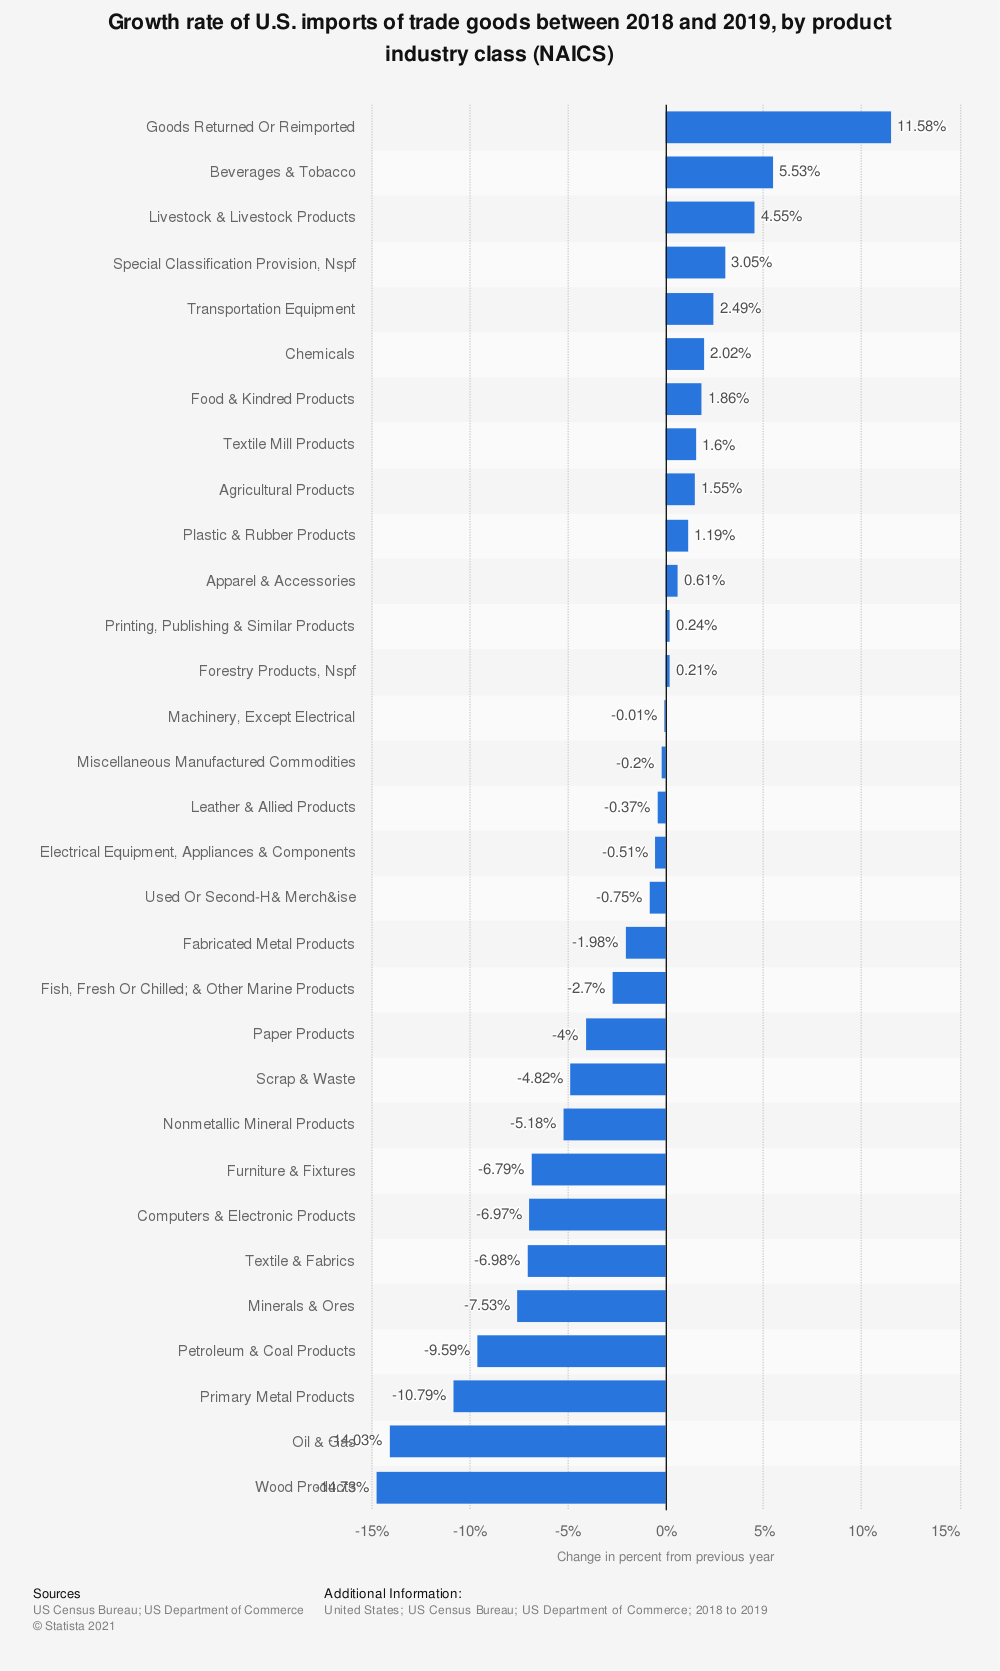 Statistic: Growth rate of U.S. imports of trade goods between 2017 and 2018, by product industry class (NAICS) | Statista